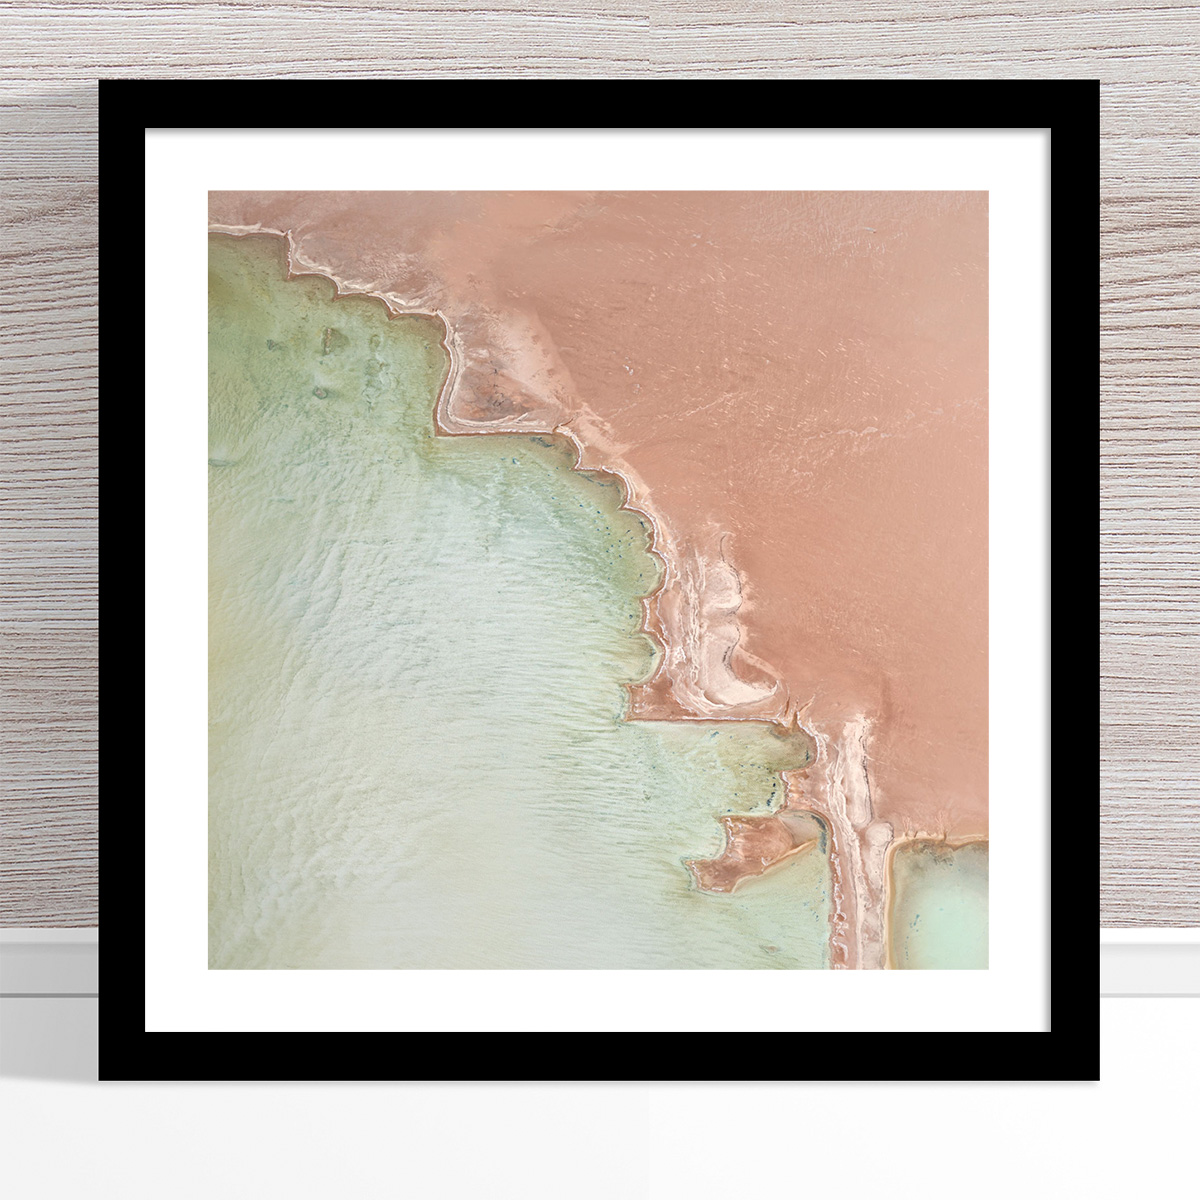 Chris Saunders - 'Aerial Salt 049' Black Frame